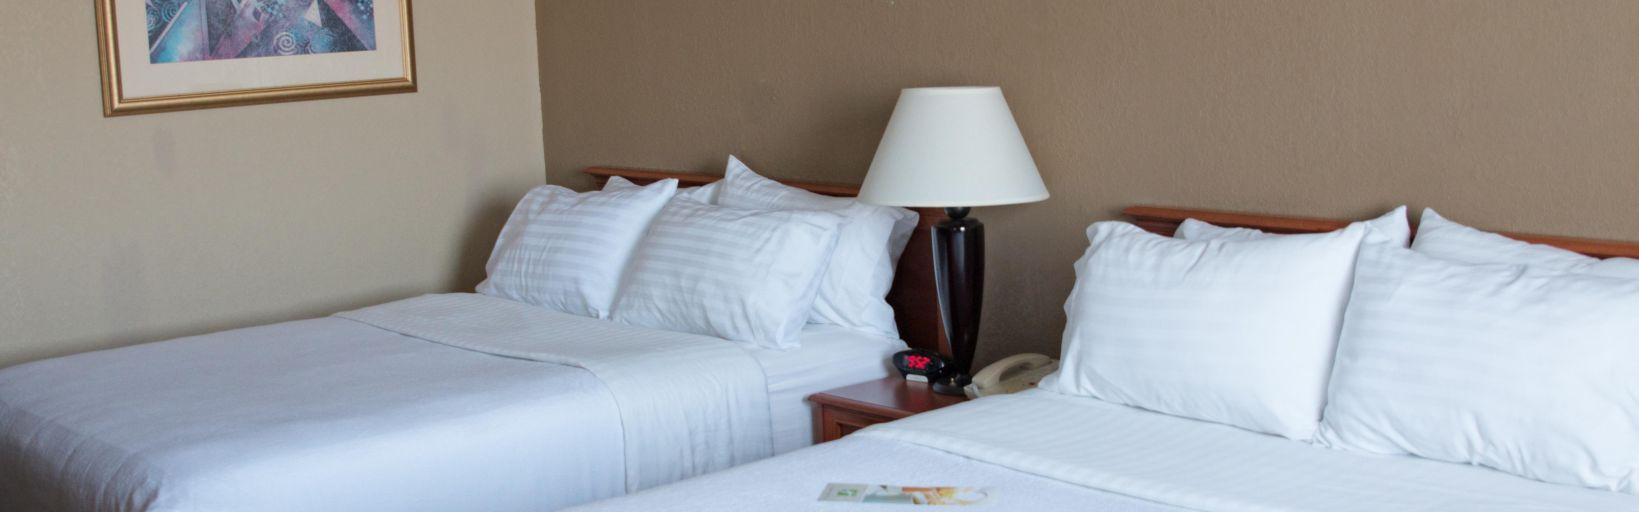 Holiday Inn Alexandria - Room Pictures & Amenities